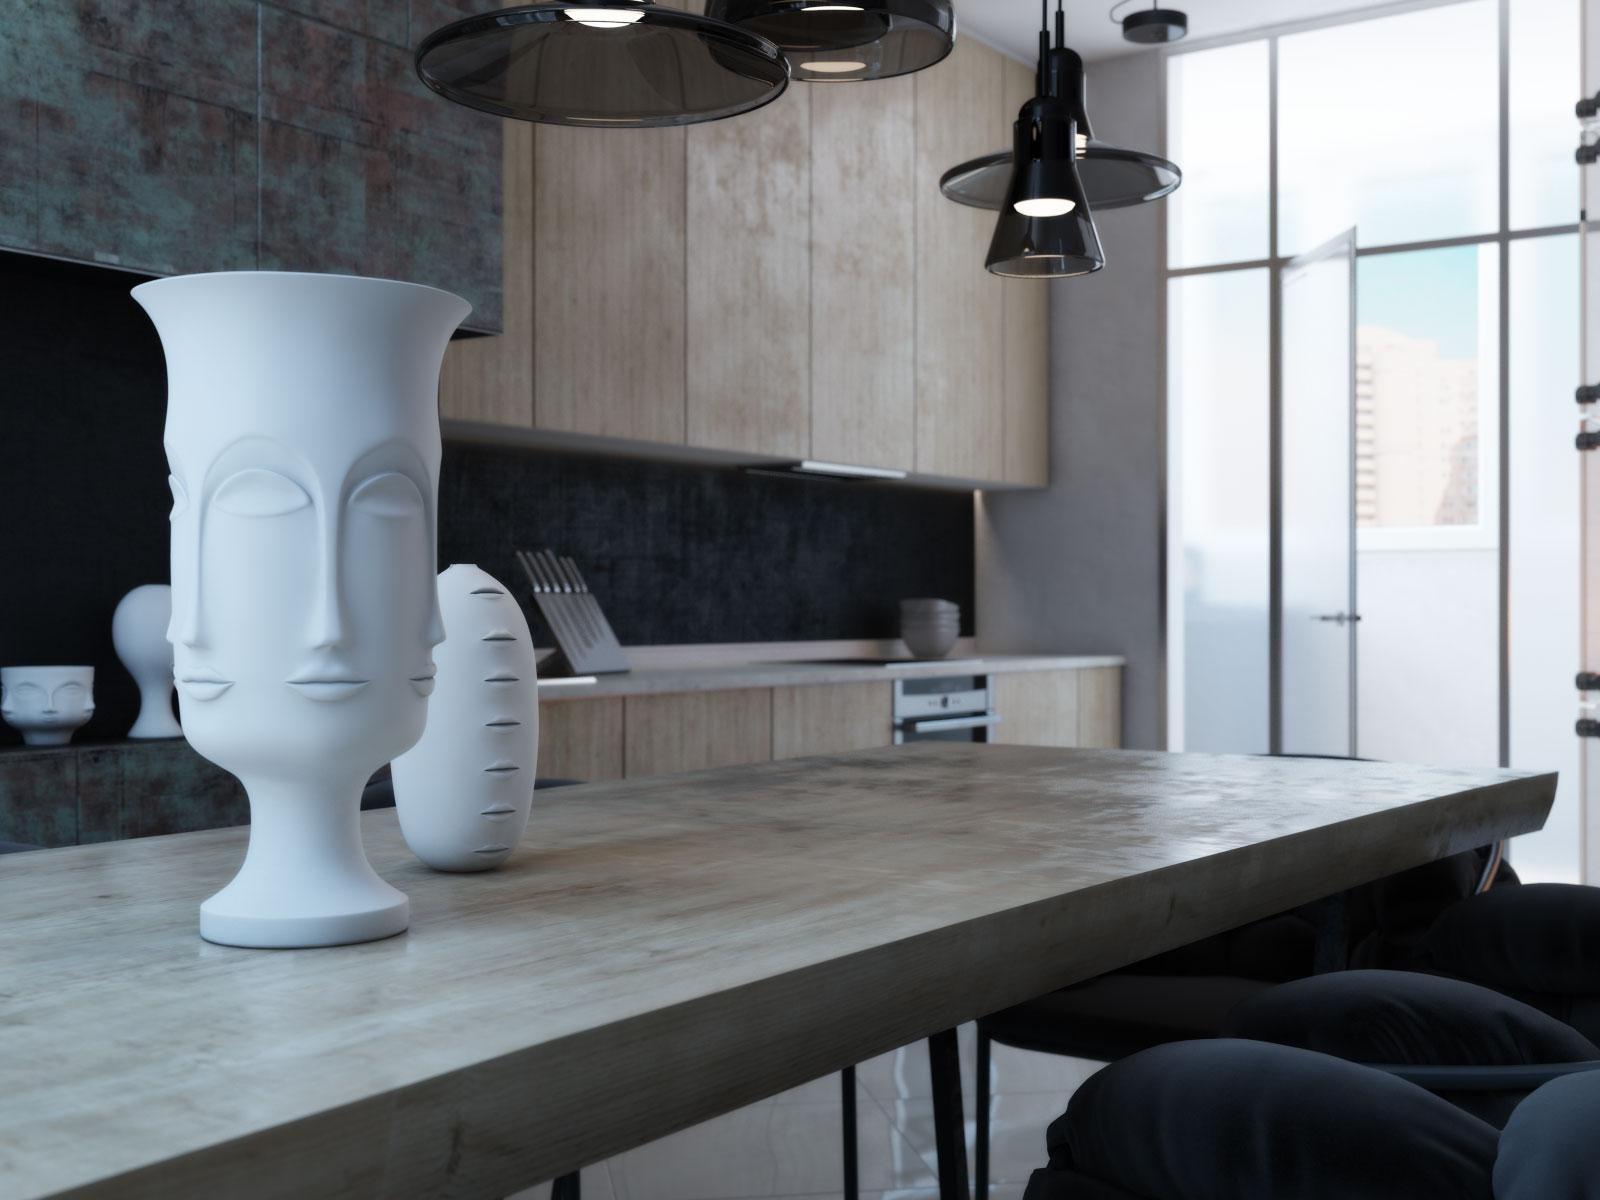 Face Vase - 4 modern homes with amazing fireplaces and creative lighting